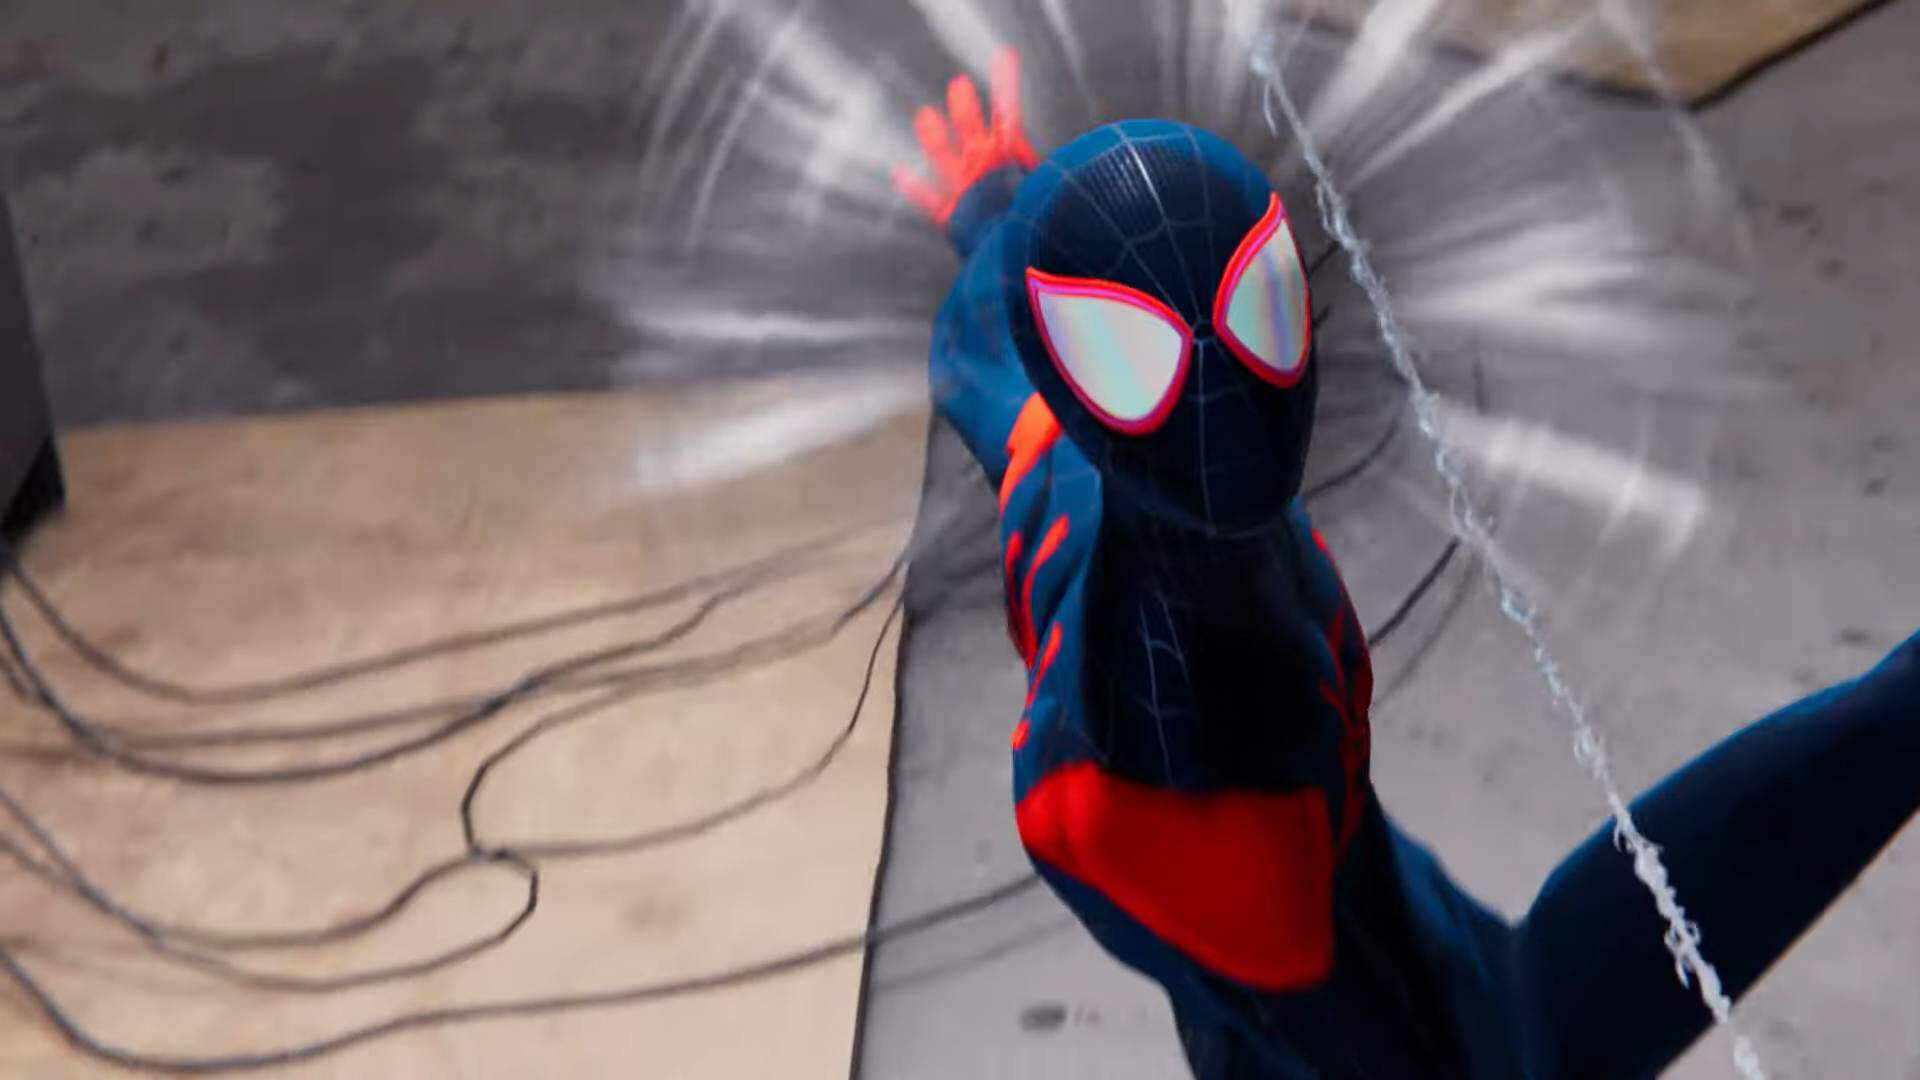 Spider-Man: Miles Morales Goes Into the Spider-Verse With a Specially Animated Suit | USgamer